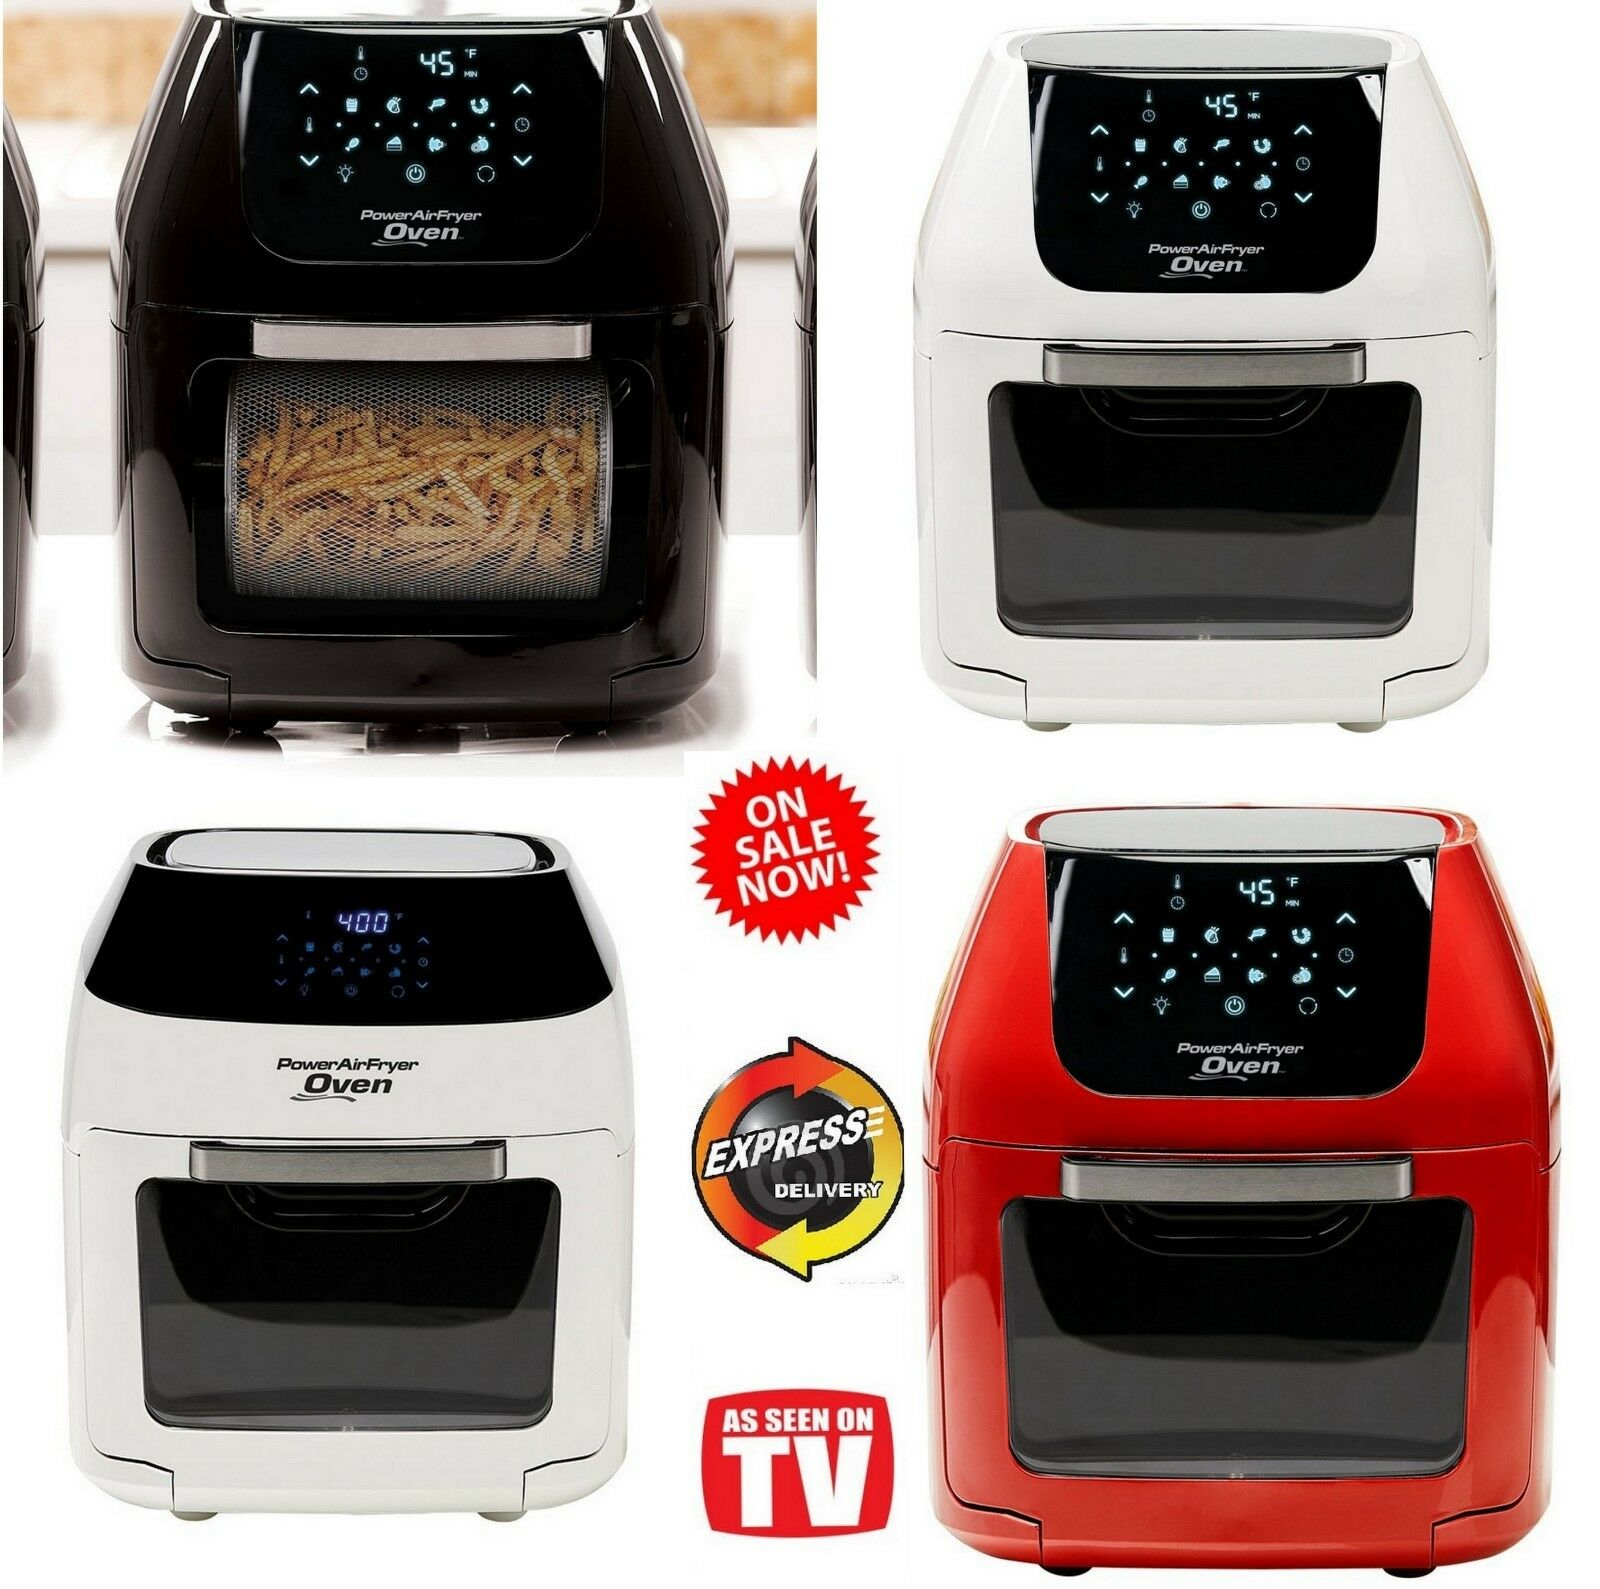 Power Air Fryer Oven Plus XL As Seen on TV 6/8 QT Family Siz